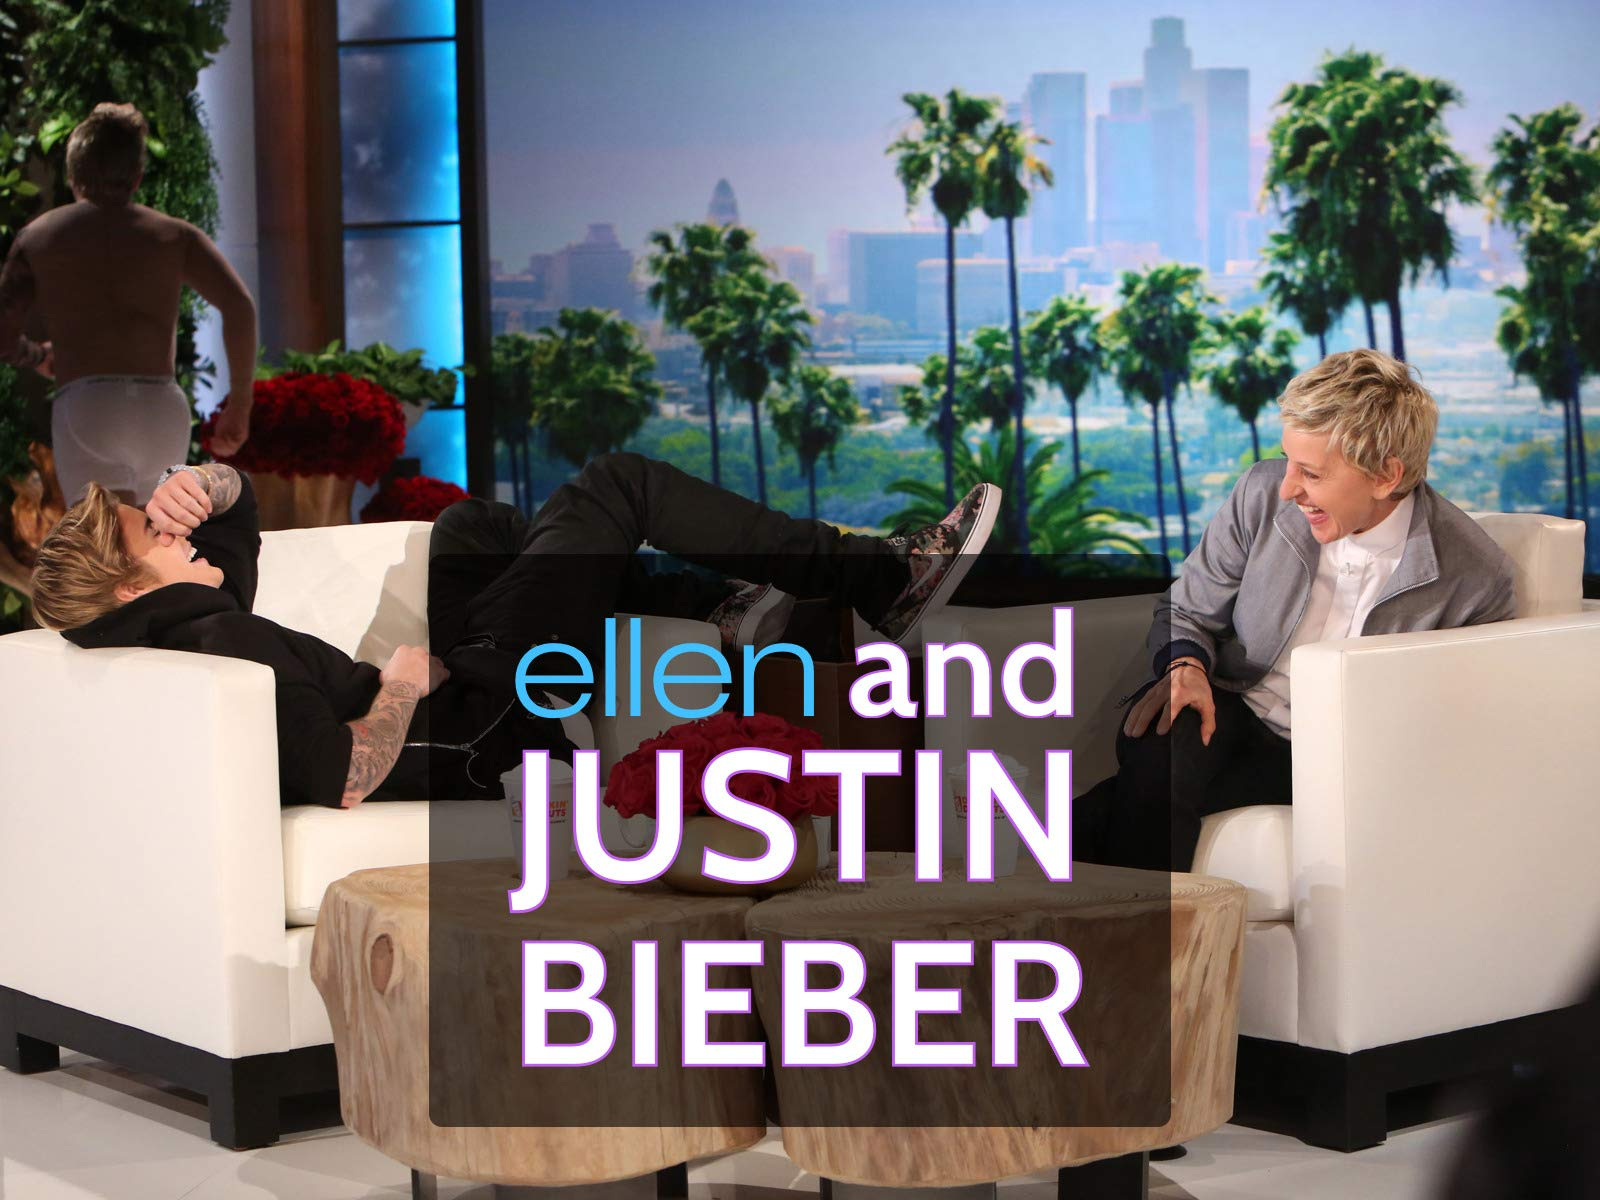 Ellen and Justin Bieber on Amazon Prime Video UK